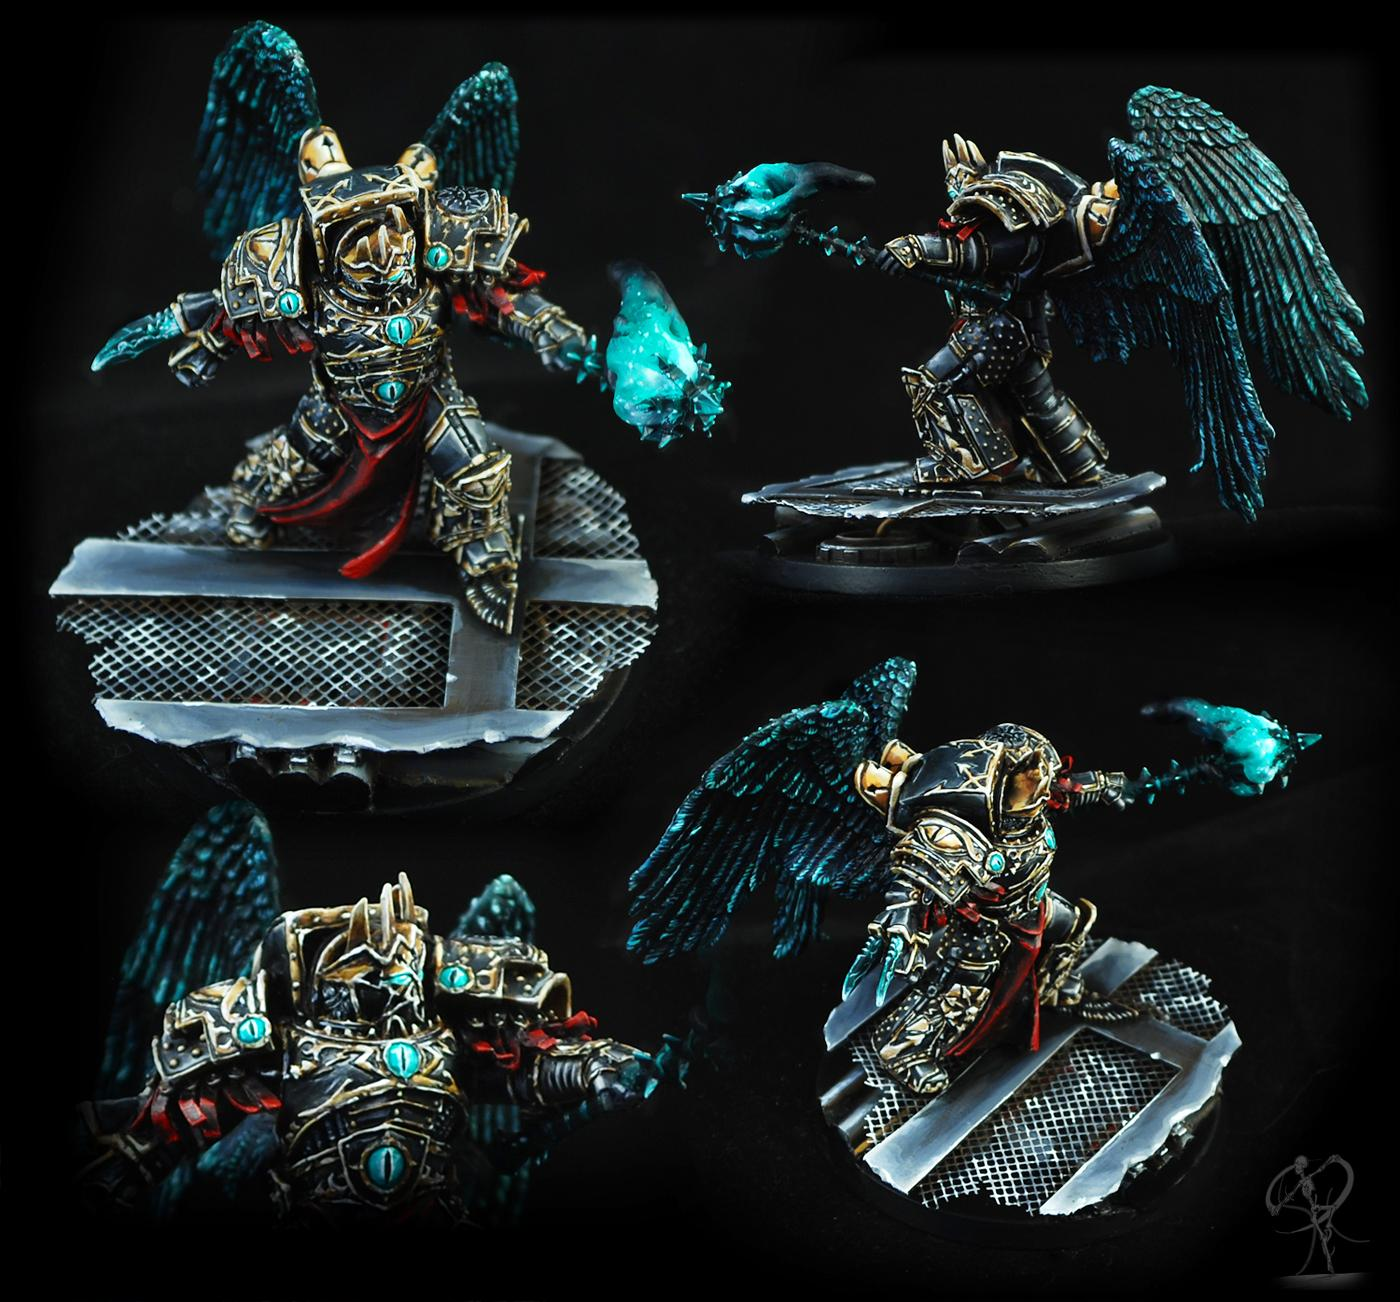 Black Legion, Chaos, Chaos Space Marines, Conversion, Greenstuff, Horus Heresy, Non-Metallic Metal, Science Fiction, Sculpting